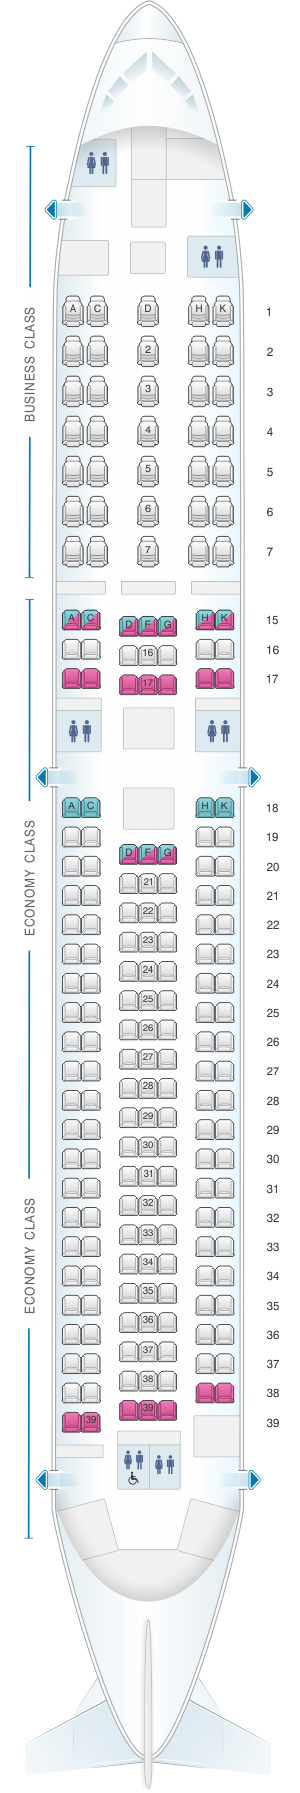 Seat map for ANA - All Nippon Airways Boeing B767 300ER 202pax